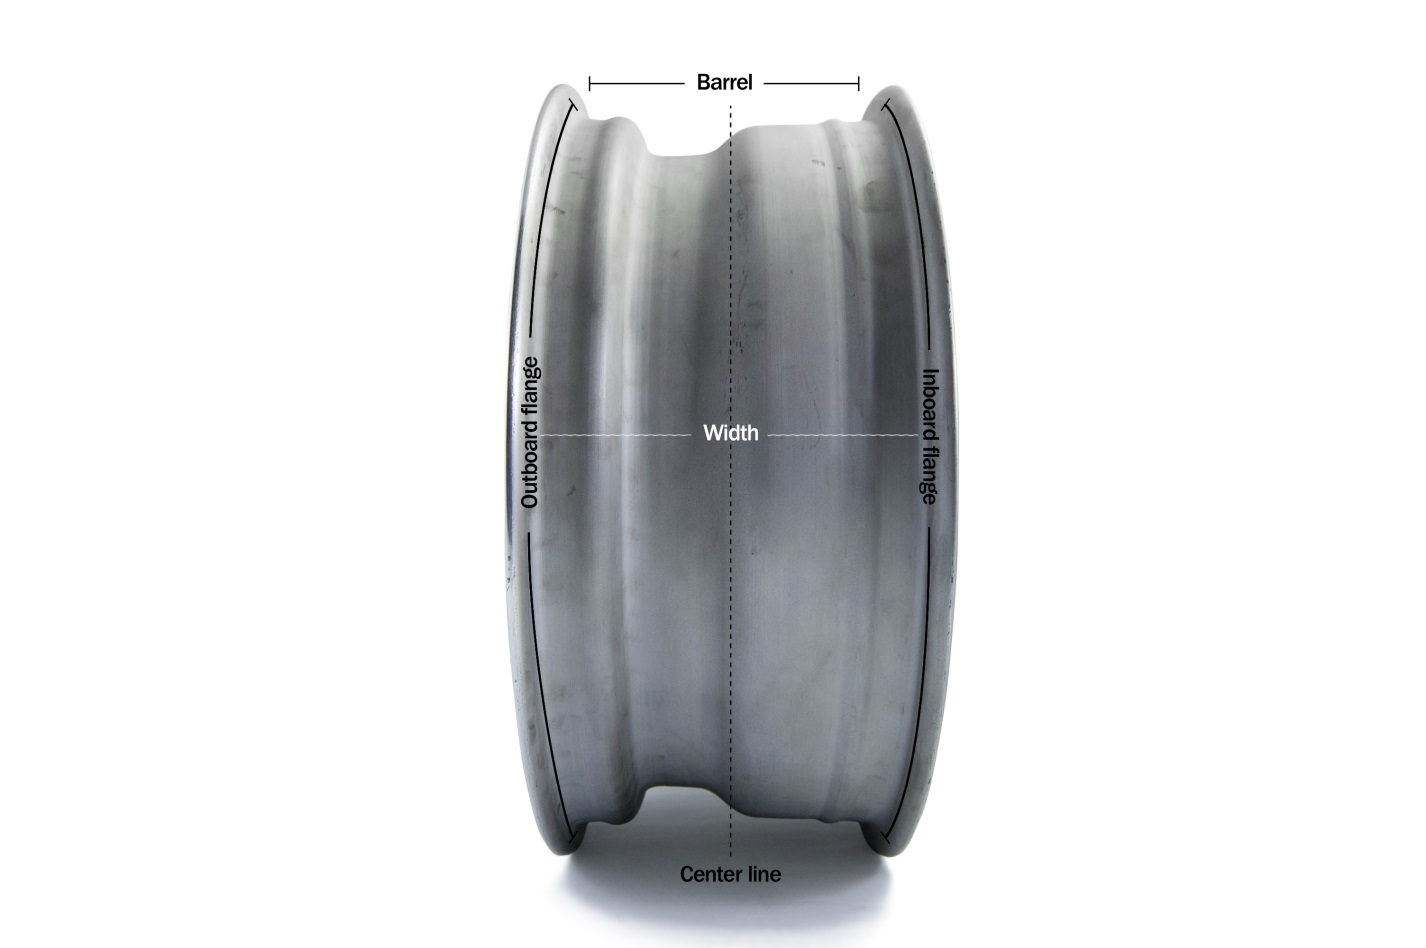 Wheel Fitment And Spacing Guide Pelican Parts Power Antenna Question Technical Bbs Barrel A Metal That Fills The Expanse Between Outboard Inboard Flanges